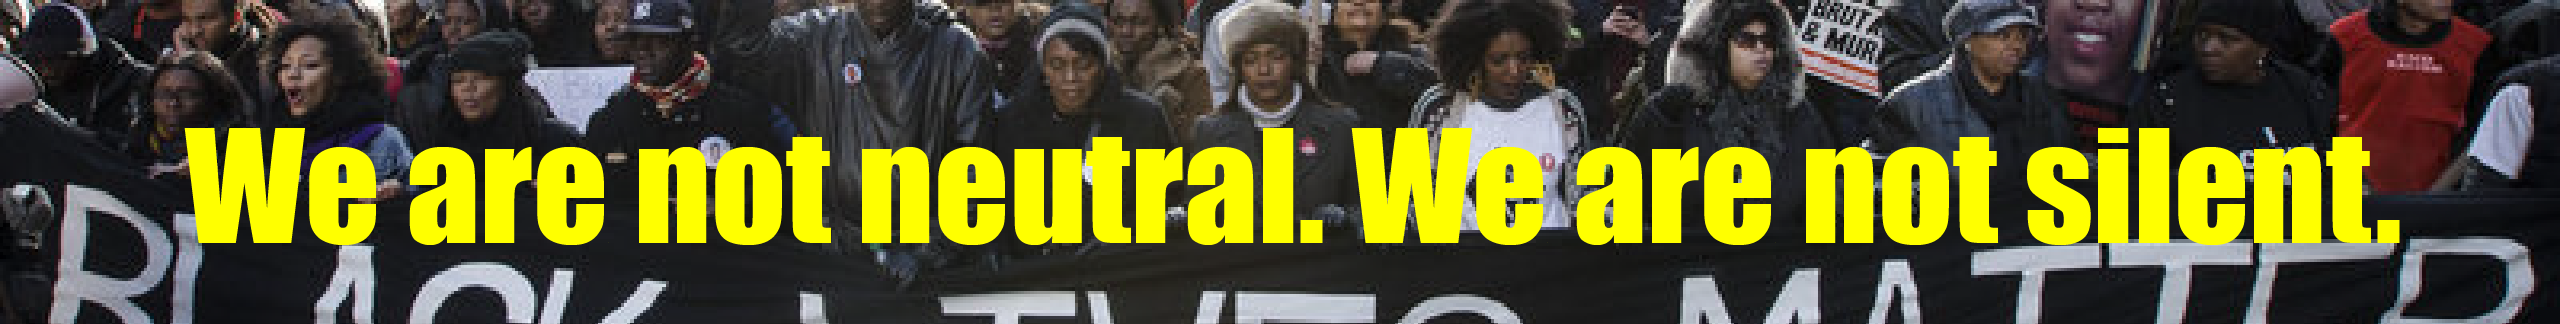 banner image saying We Are Not Neutral. We Are Not Silent.